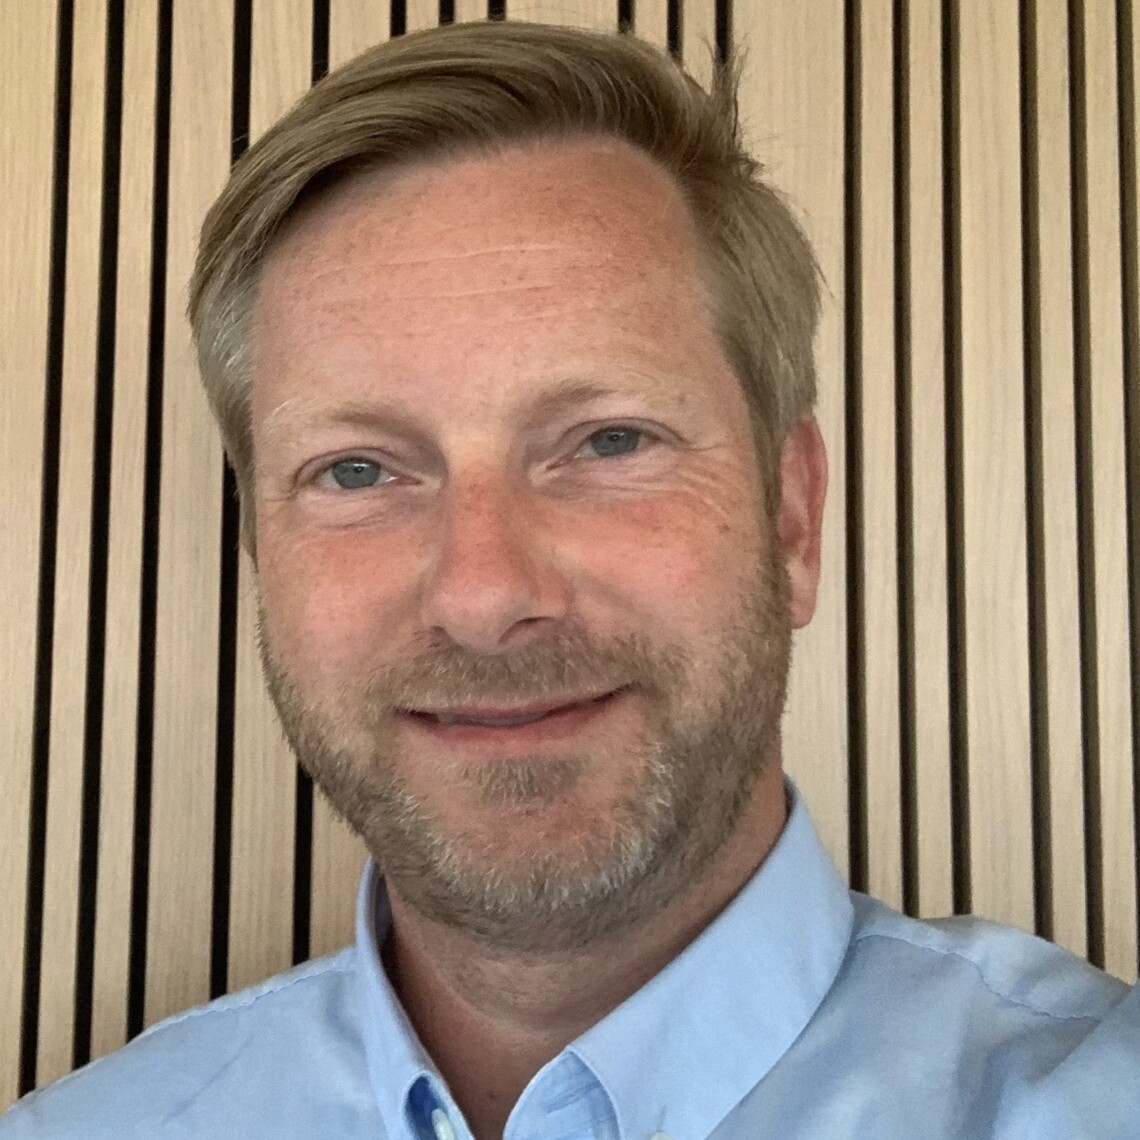 Anders Normann